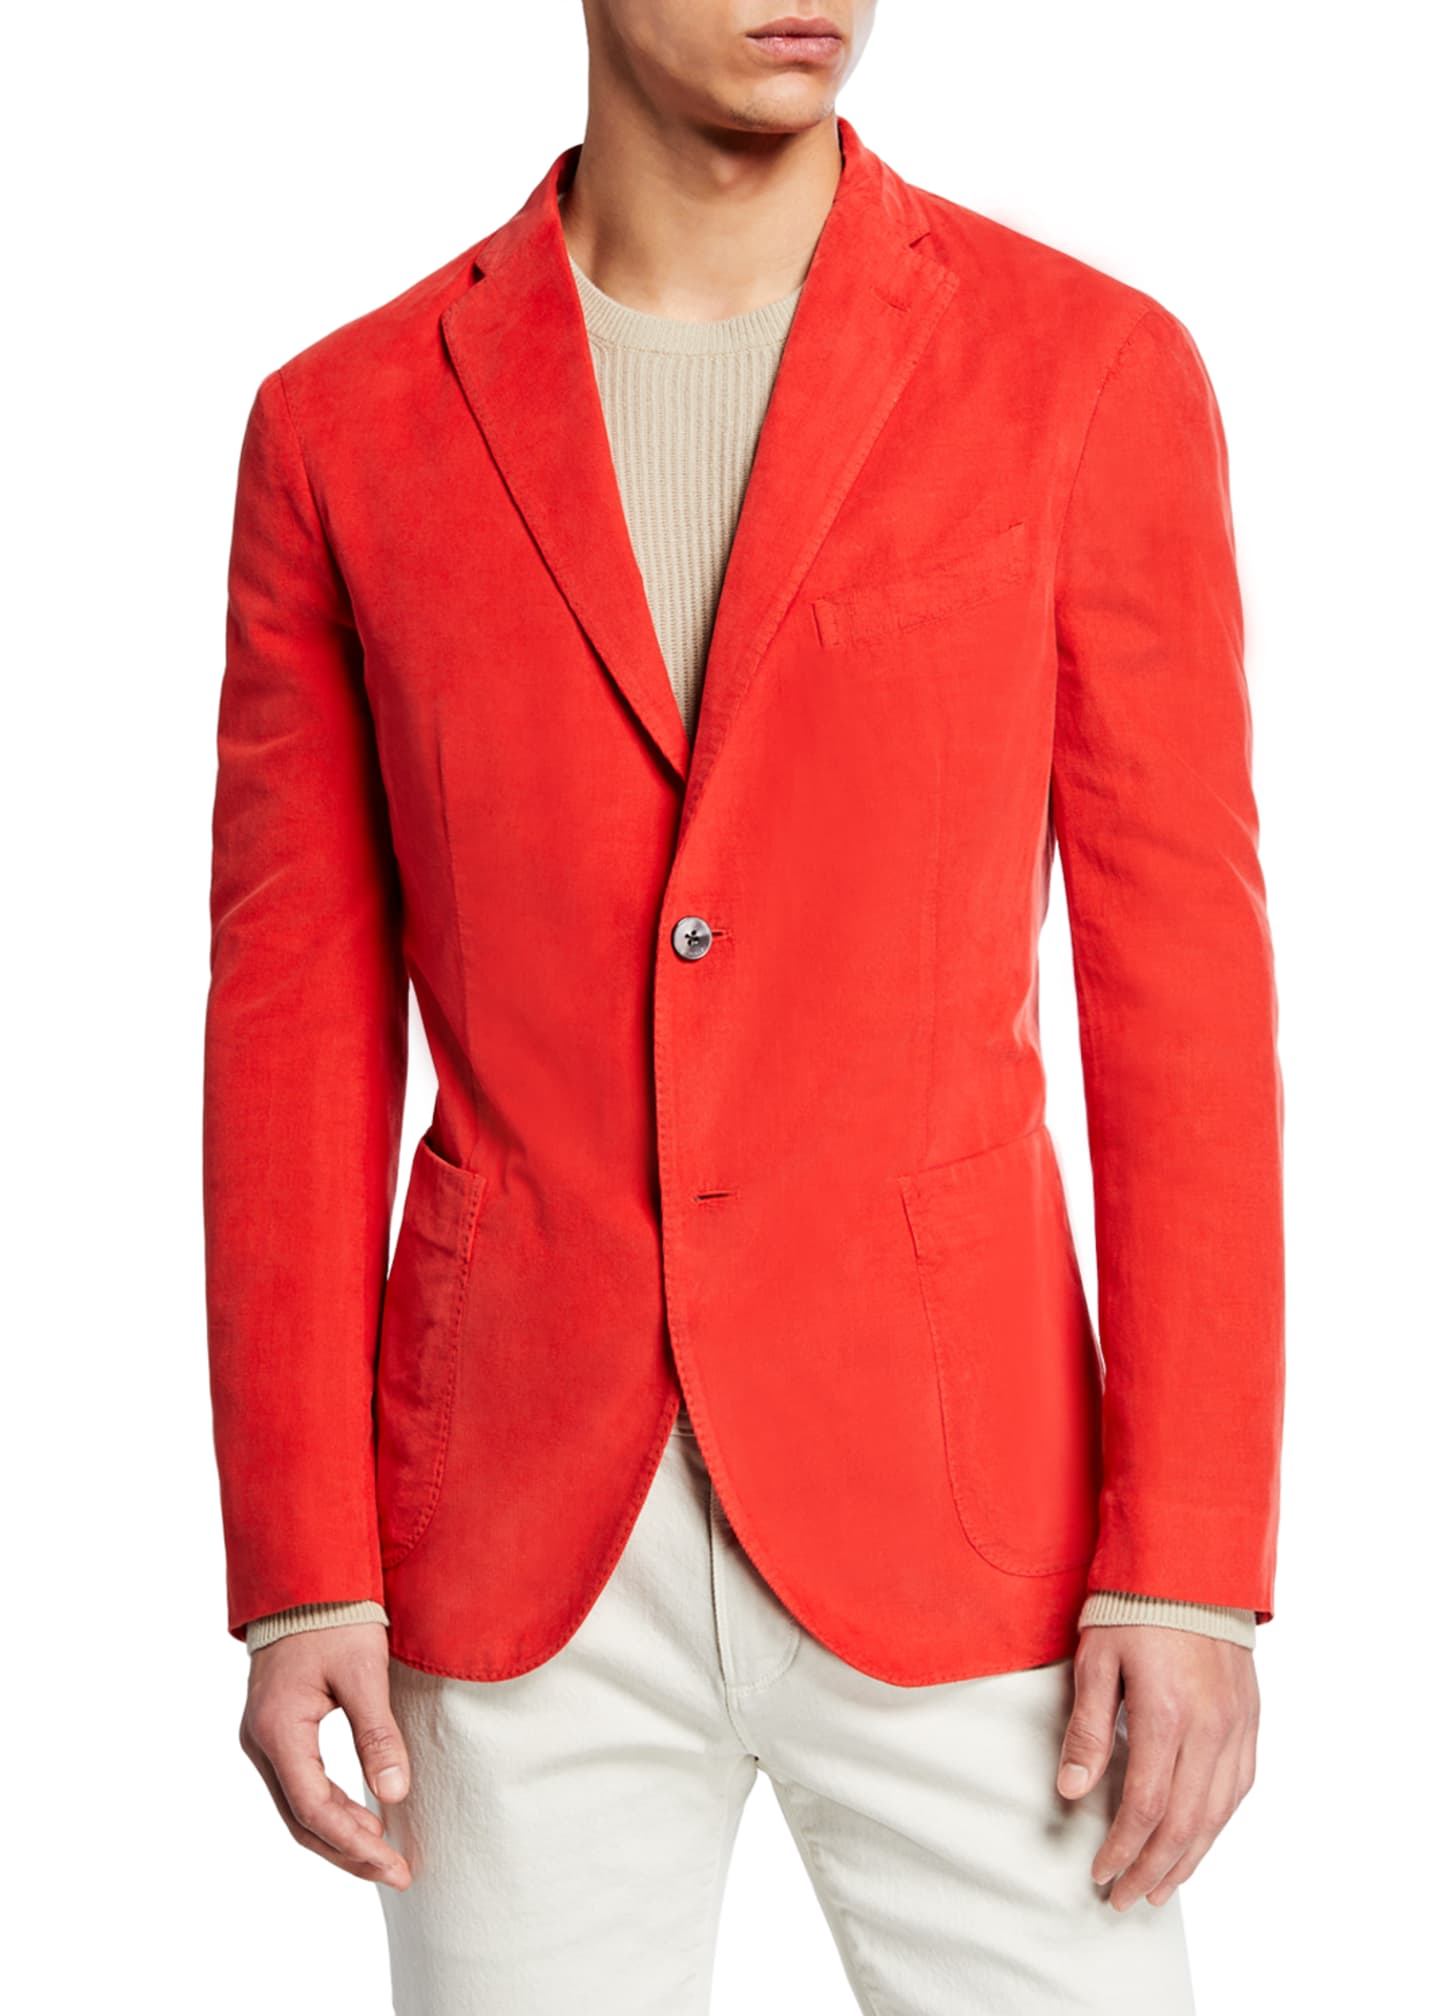 Boglioli Men's Corduroy Two-Button Jacket, Red